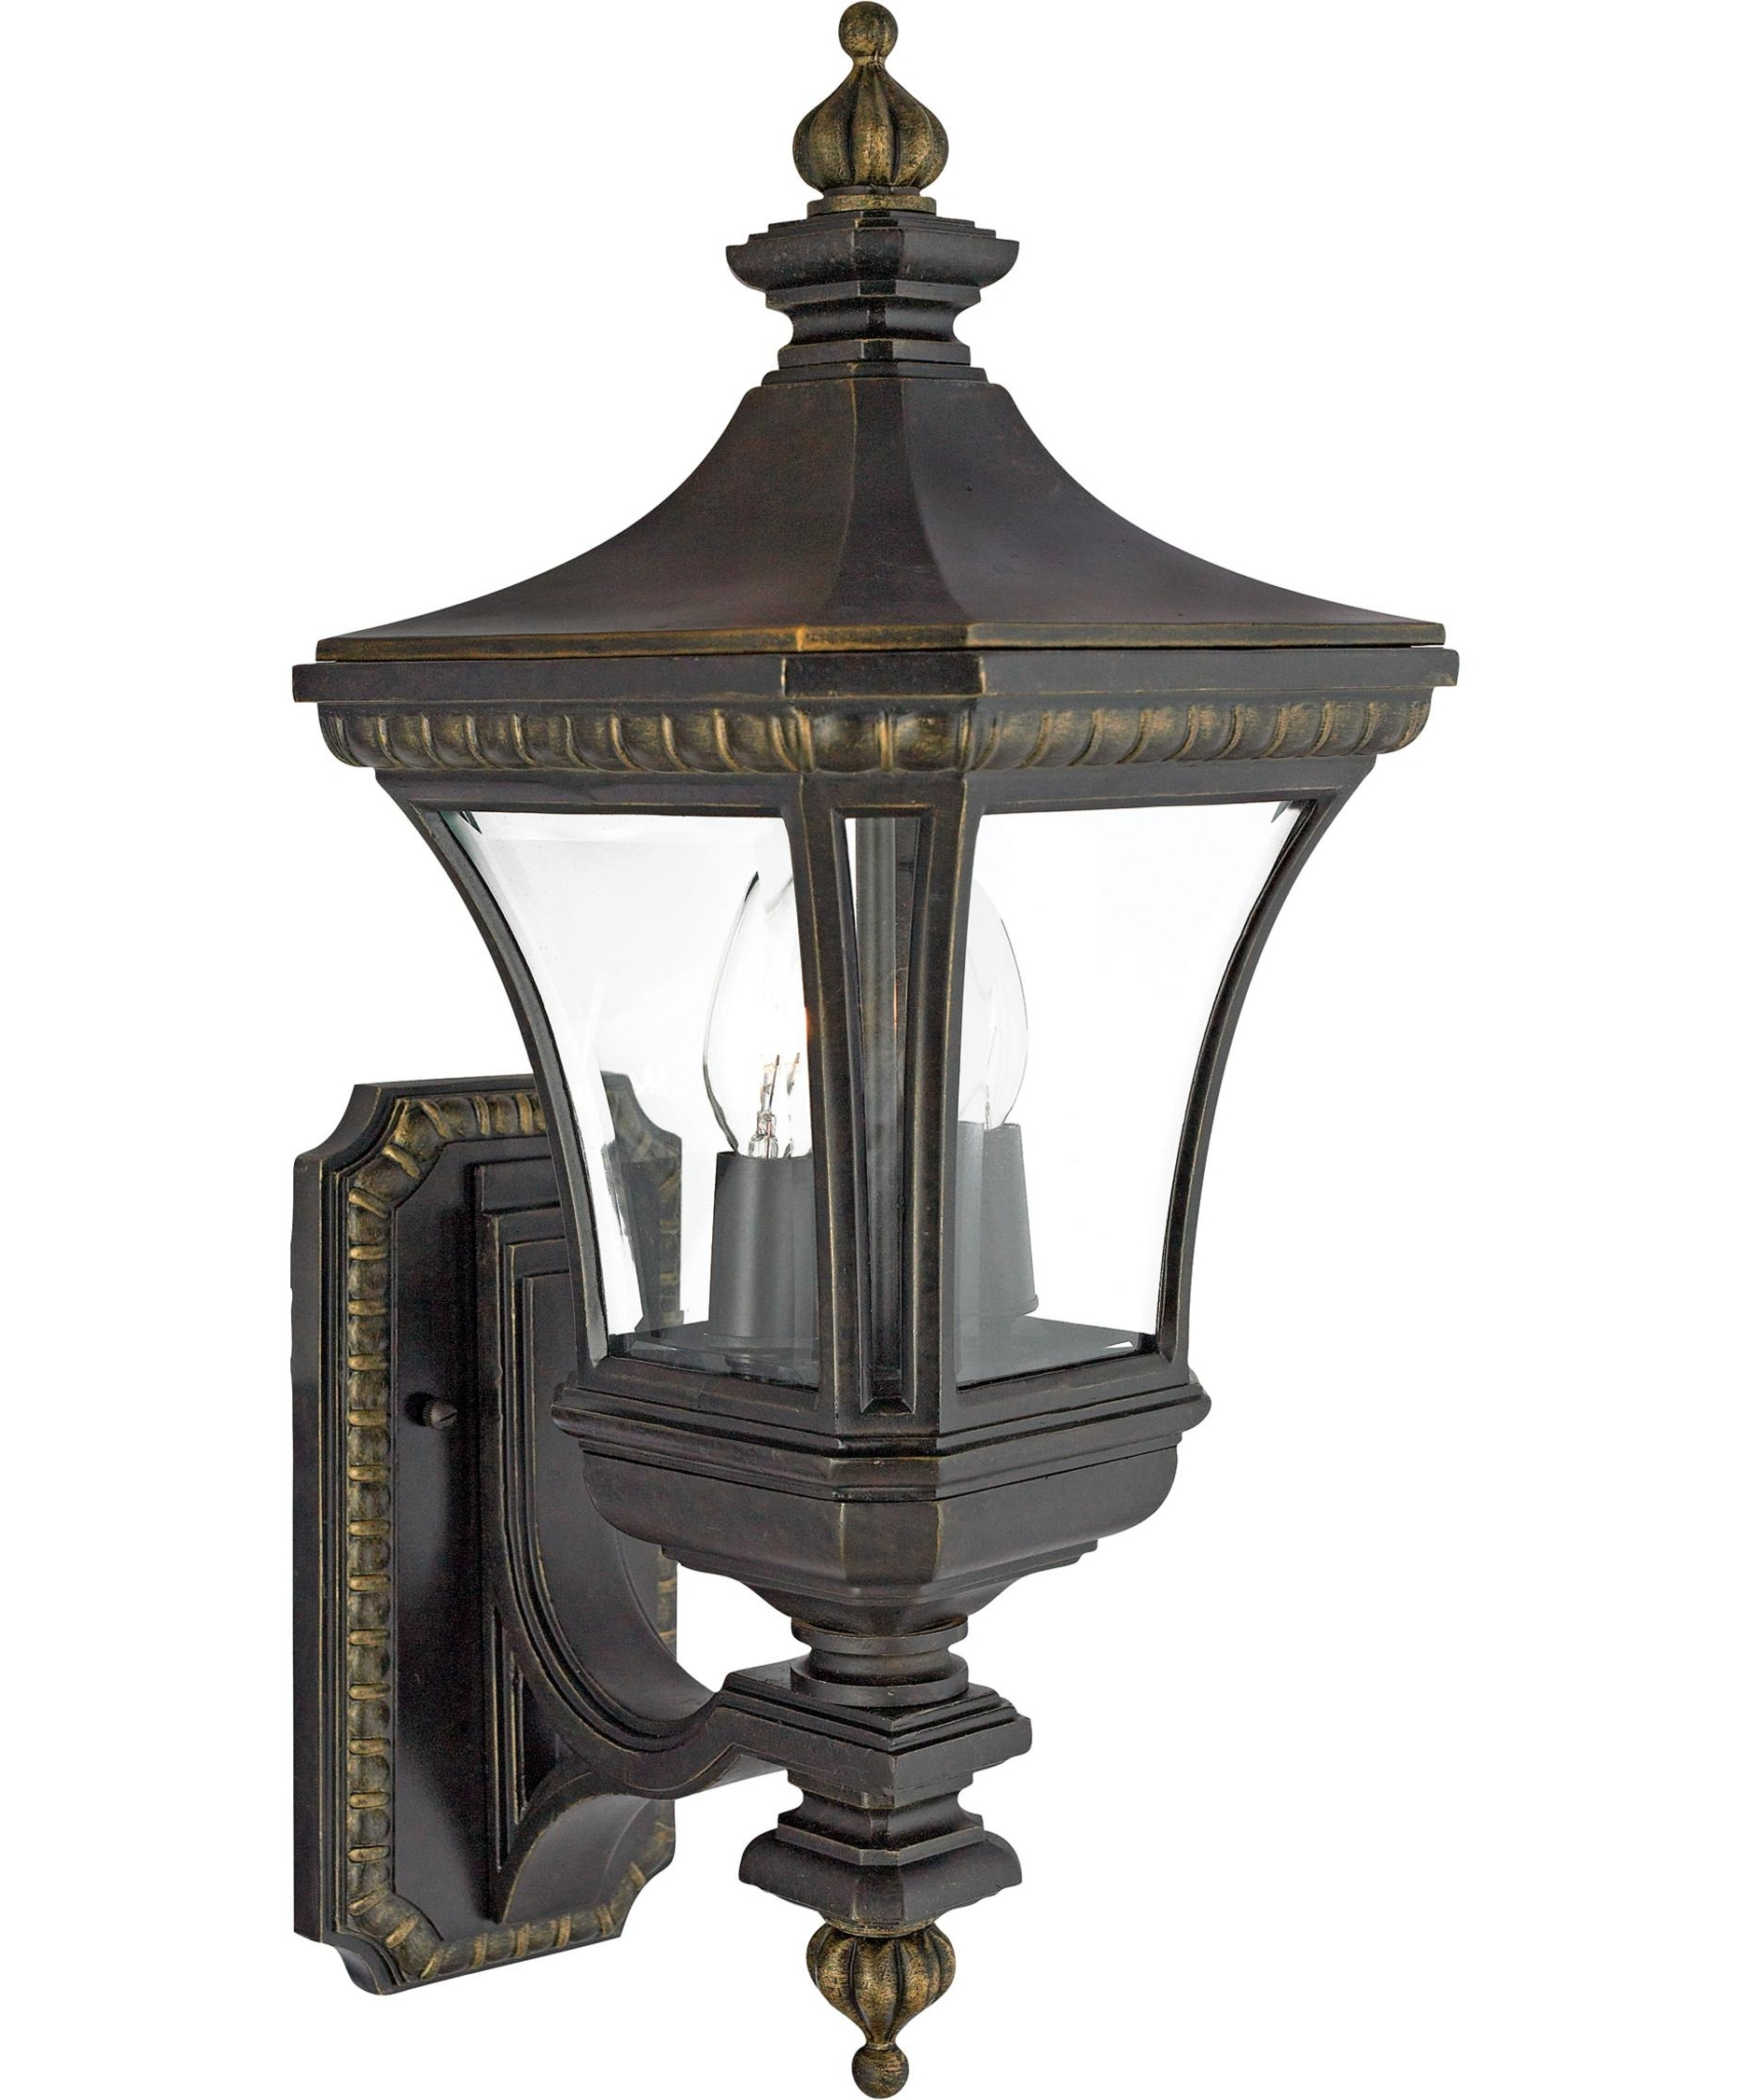 Popular Victorian Outdoor Lighting Luxury Ava Bathroom Pendant Light Fluted Intended For Victorian Outdoor Lanterns (View 18 of 20)